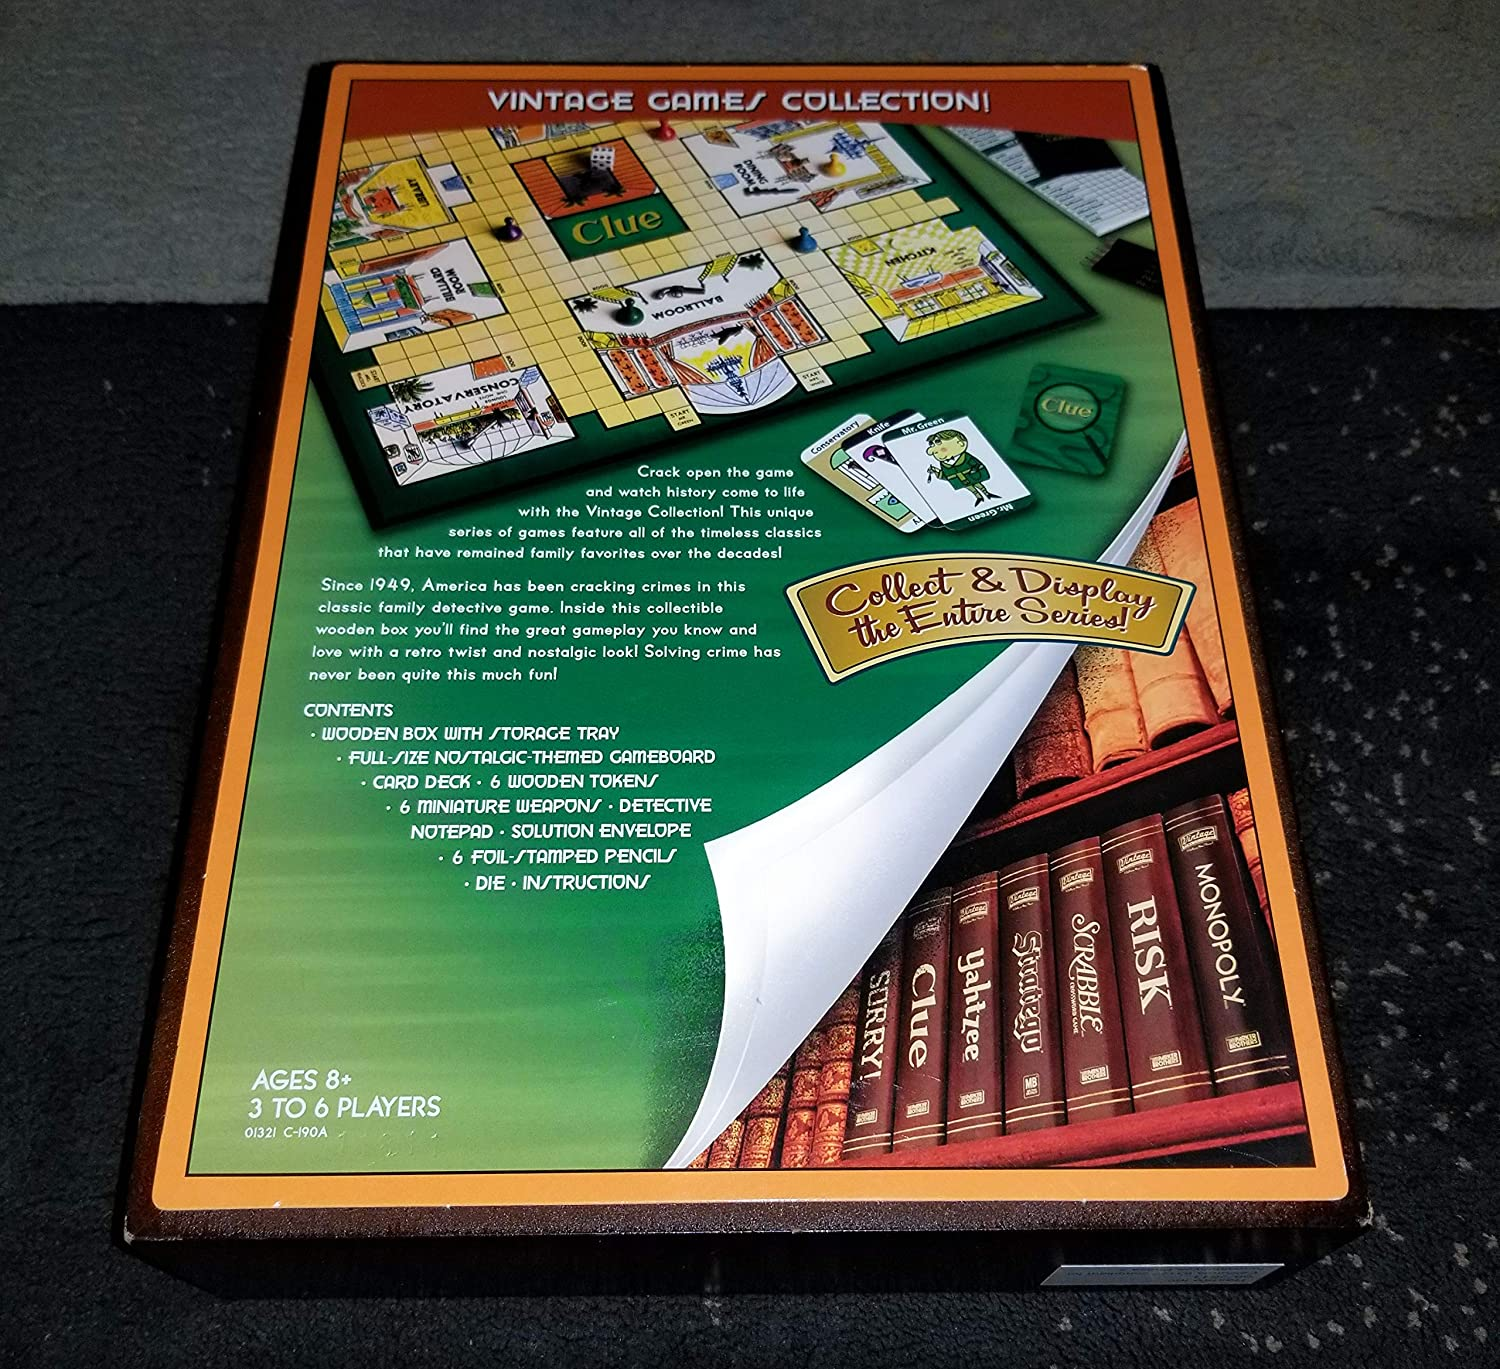 Parker Brothers Vintage Game Collection Wooden Book Box Clue by Hasbro (English Manual): Amazon.es: Juguetes y juegos